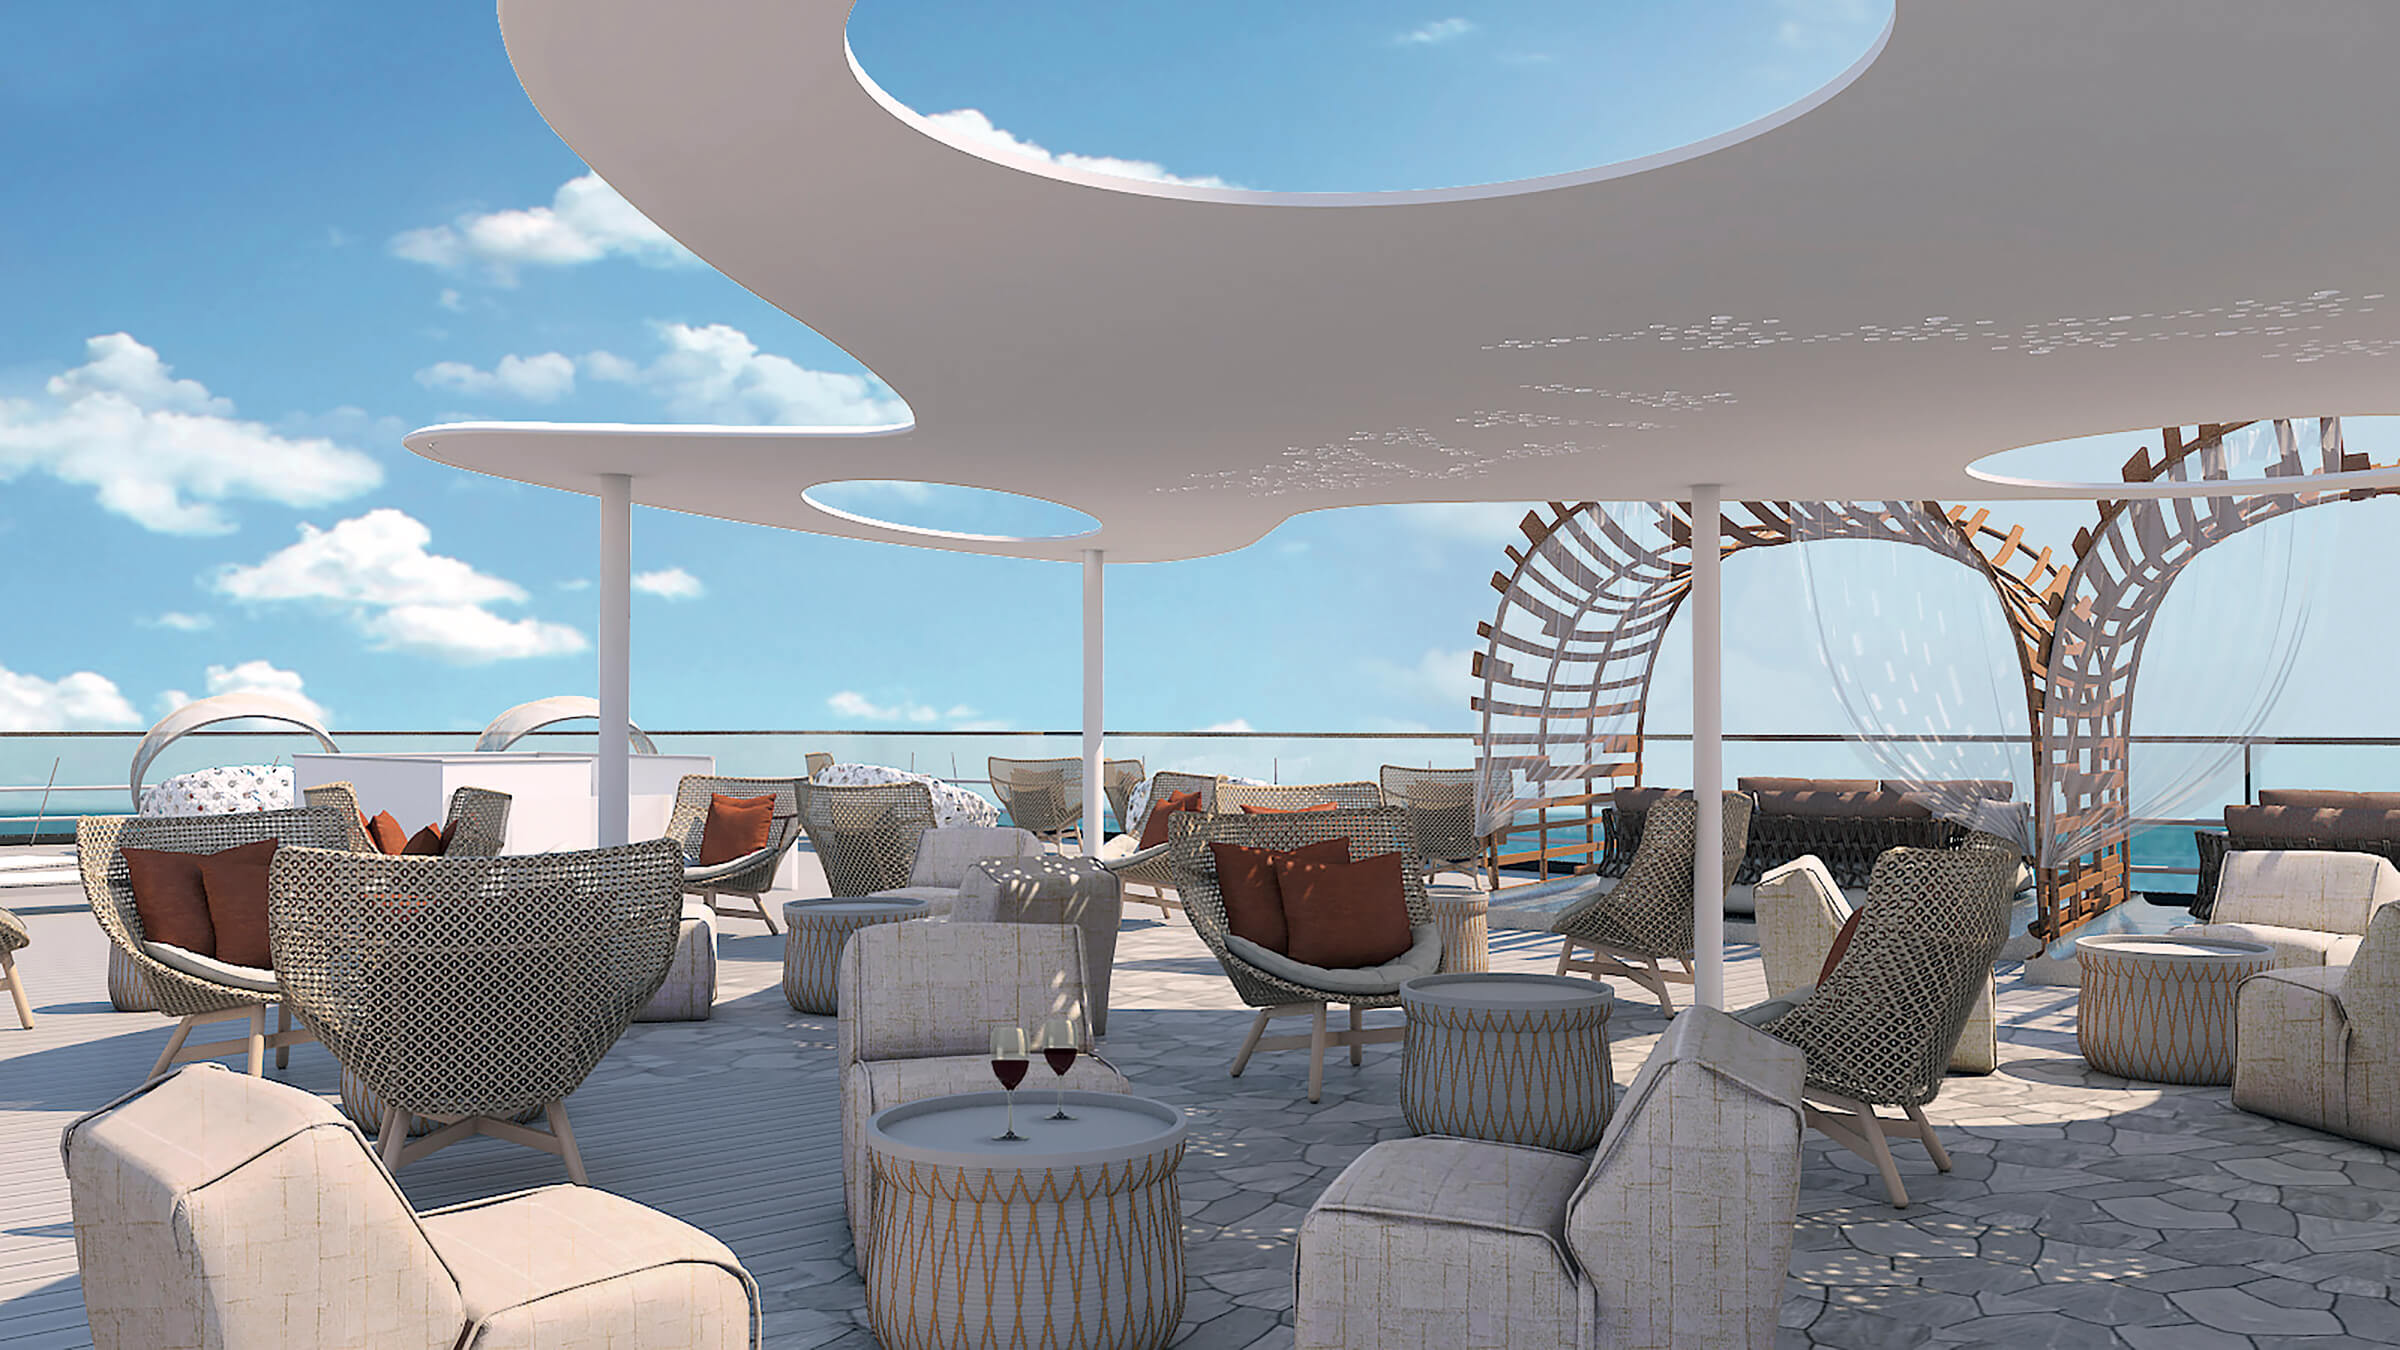 Celebrity Cruises offers a glimpse of sustainable travel with its new ship